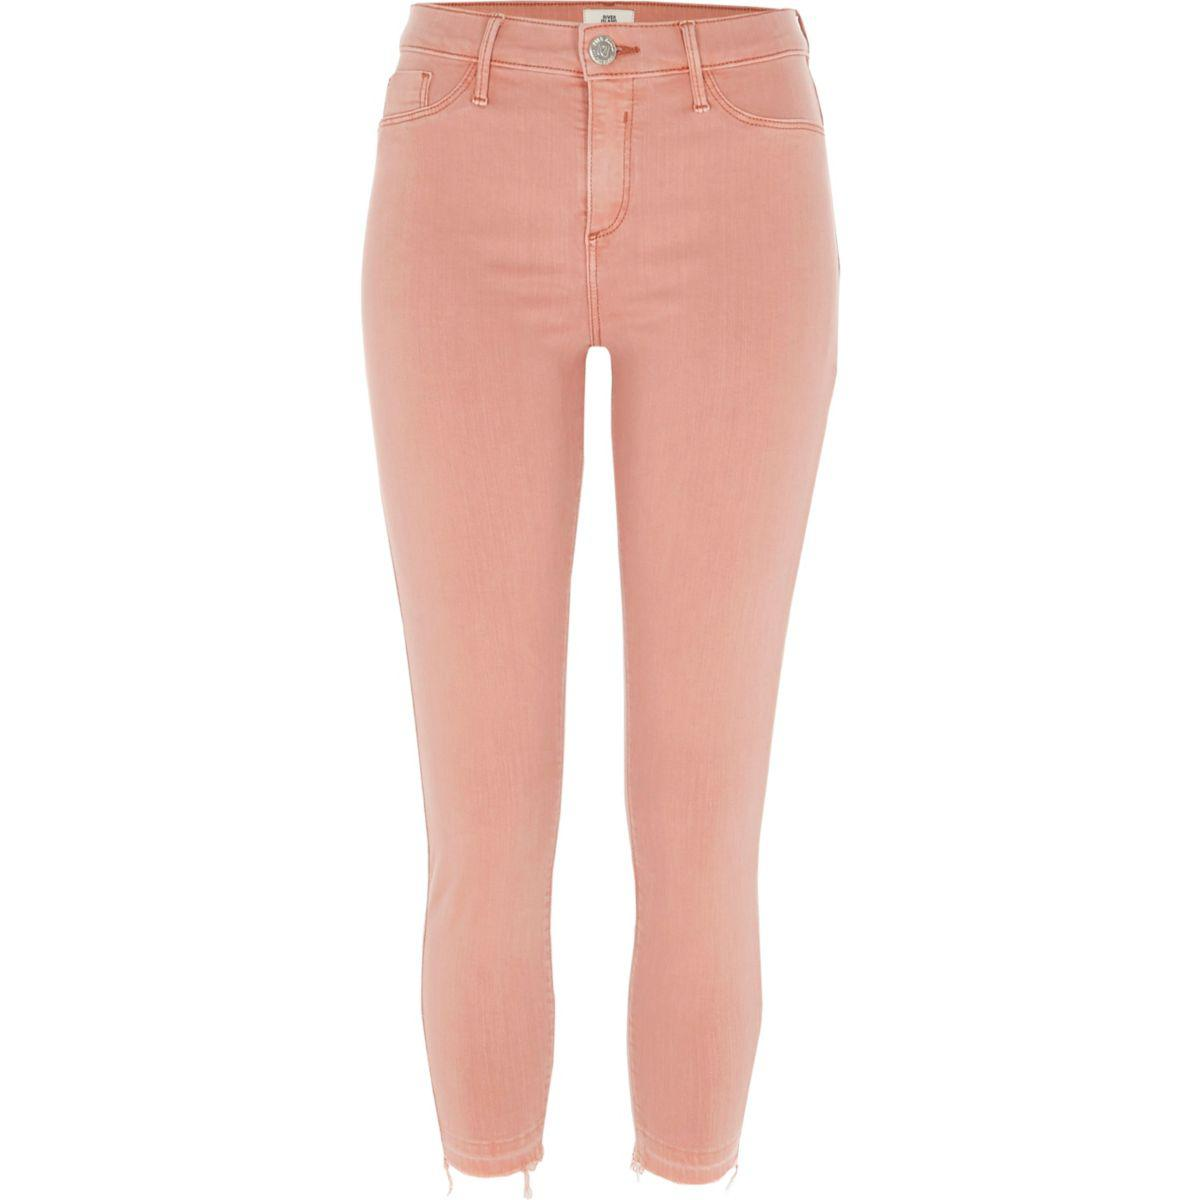 Womens Petite Pink Molly raw hem jeggings River Island